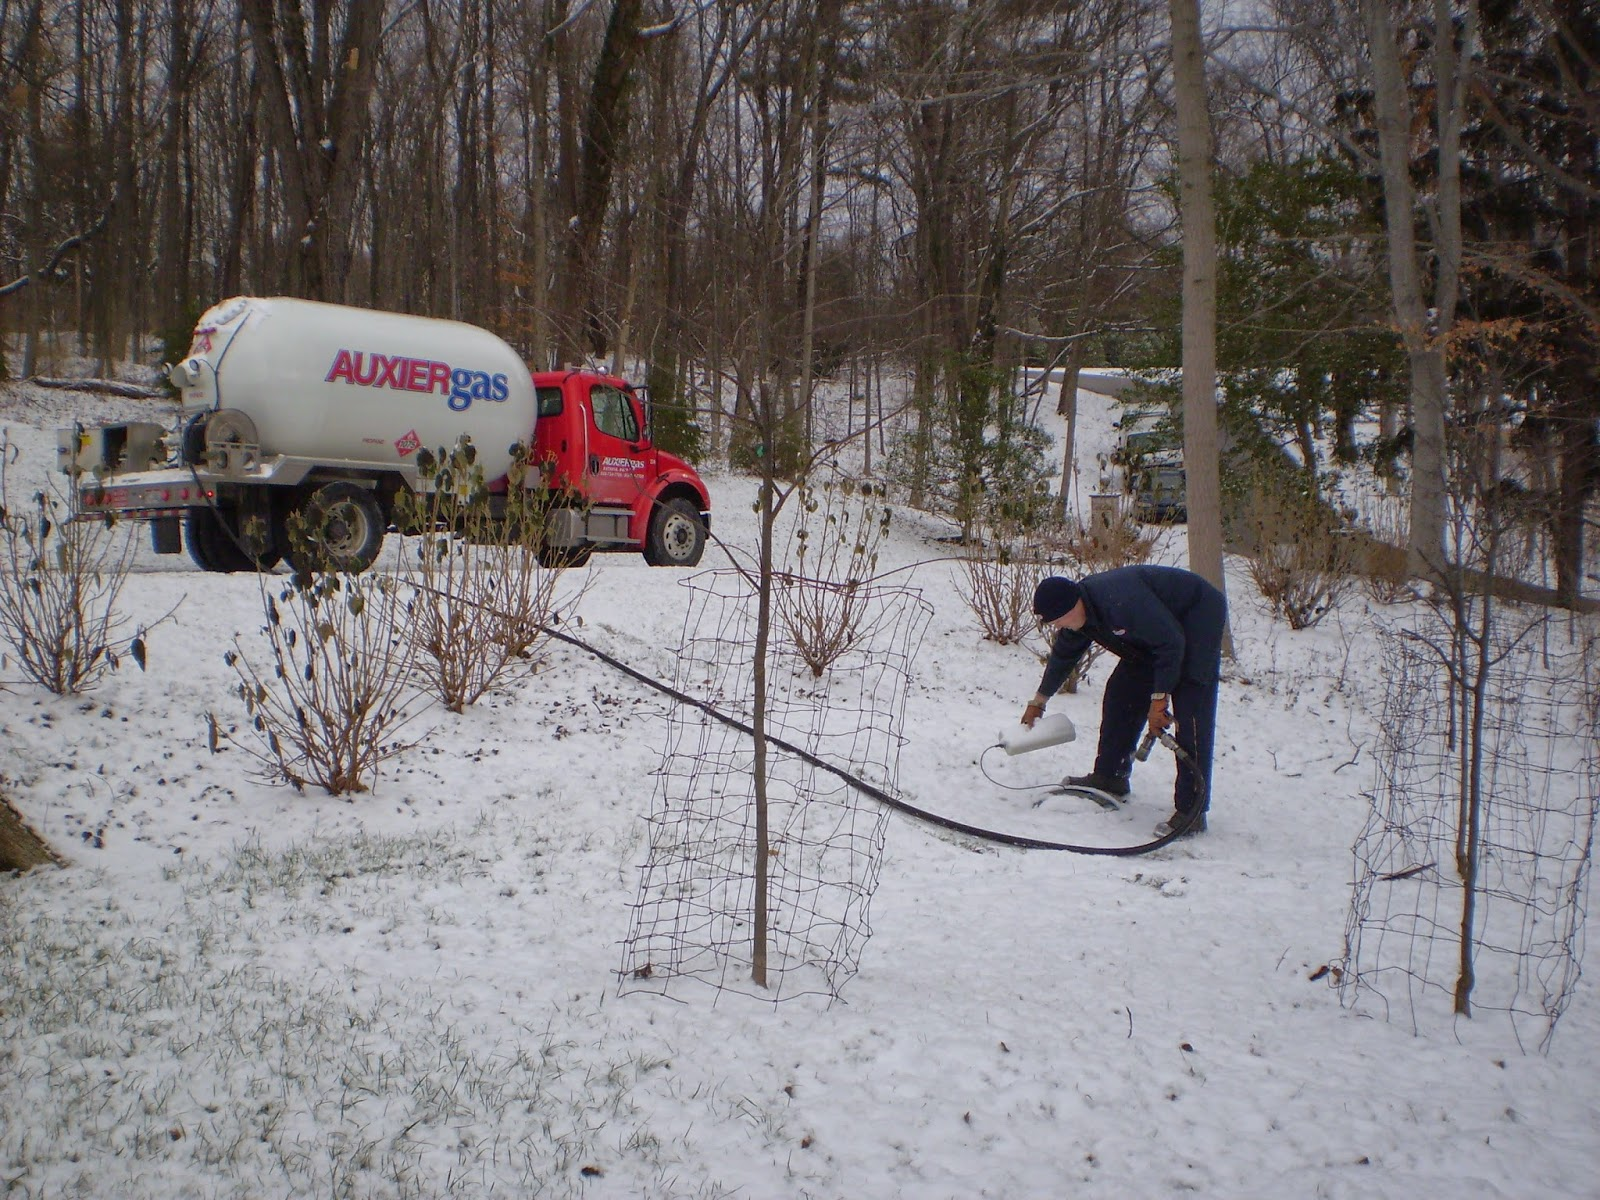 Image of Auxier Gas employee filling propane tank